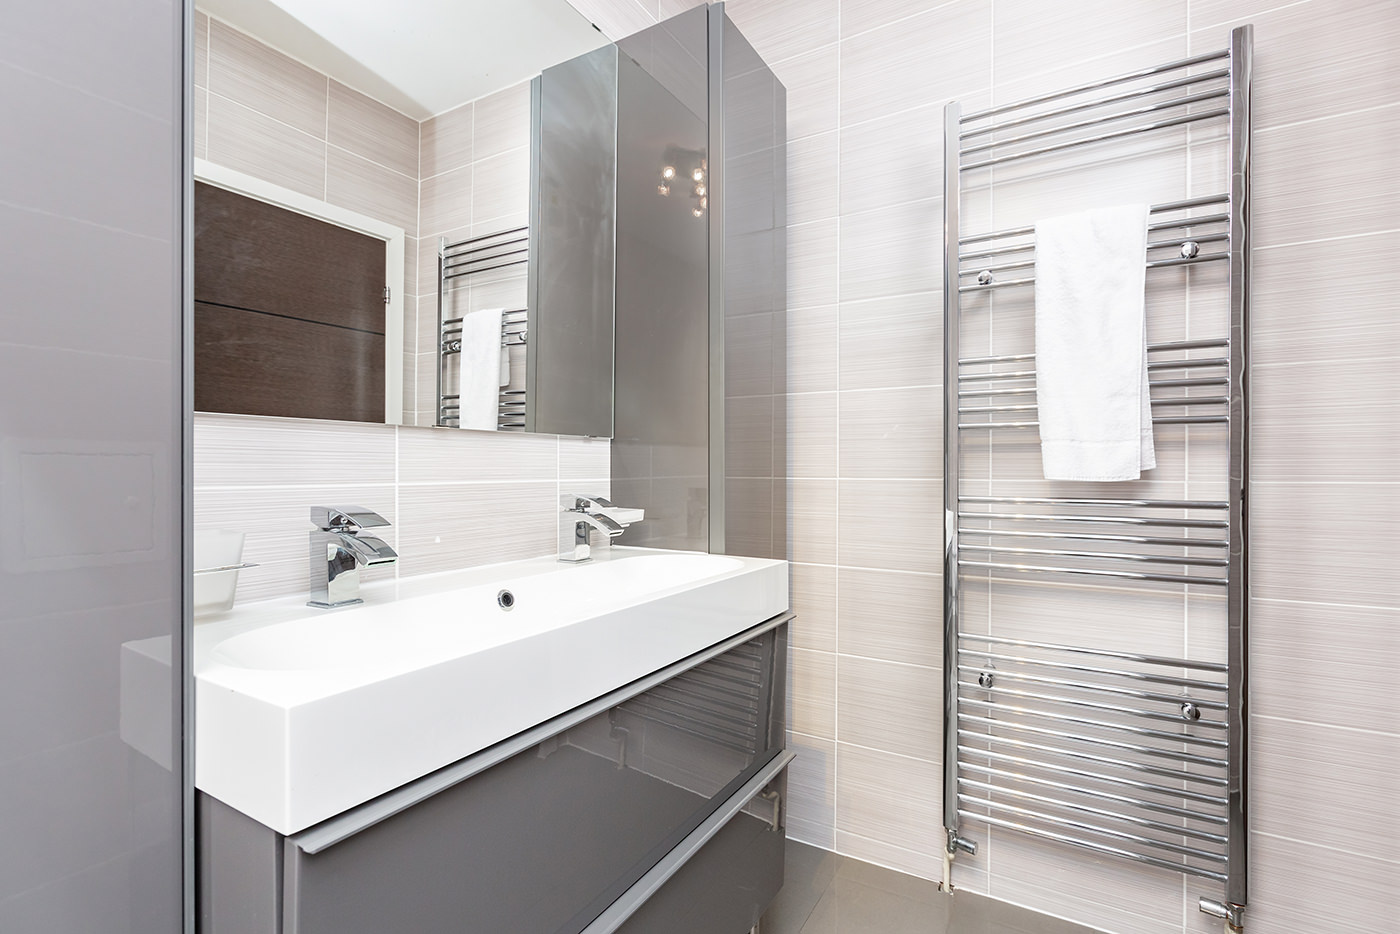 Sink at Manhattan Heights Apartments, Centre, Maidstone - Citybase Apartments